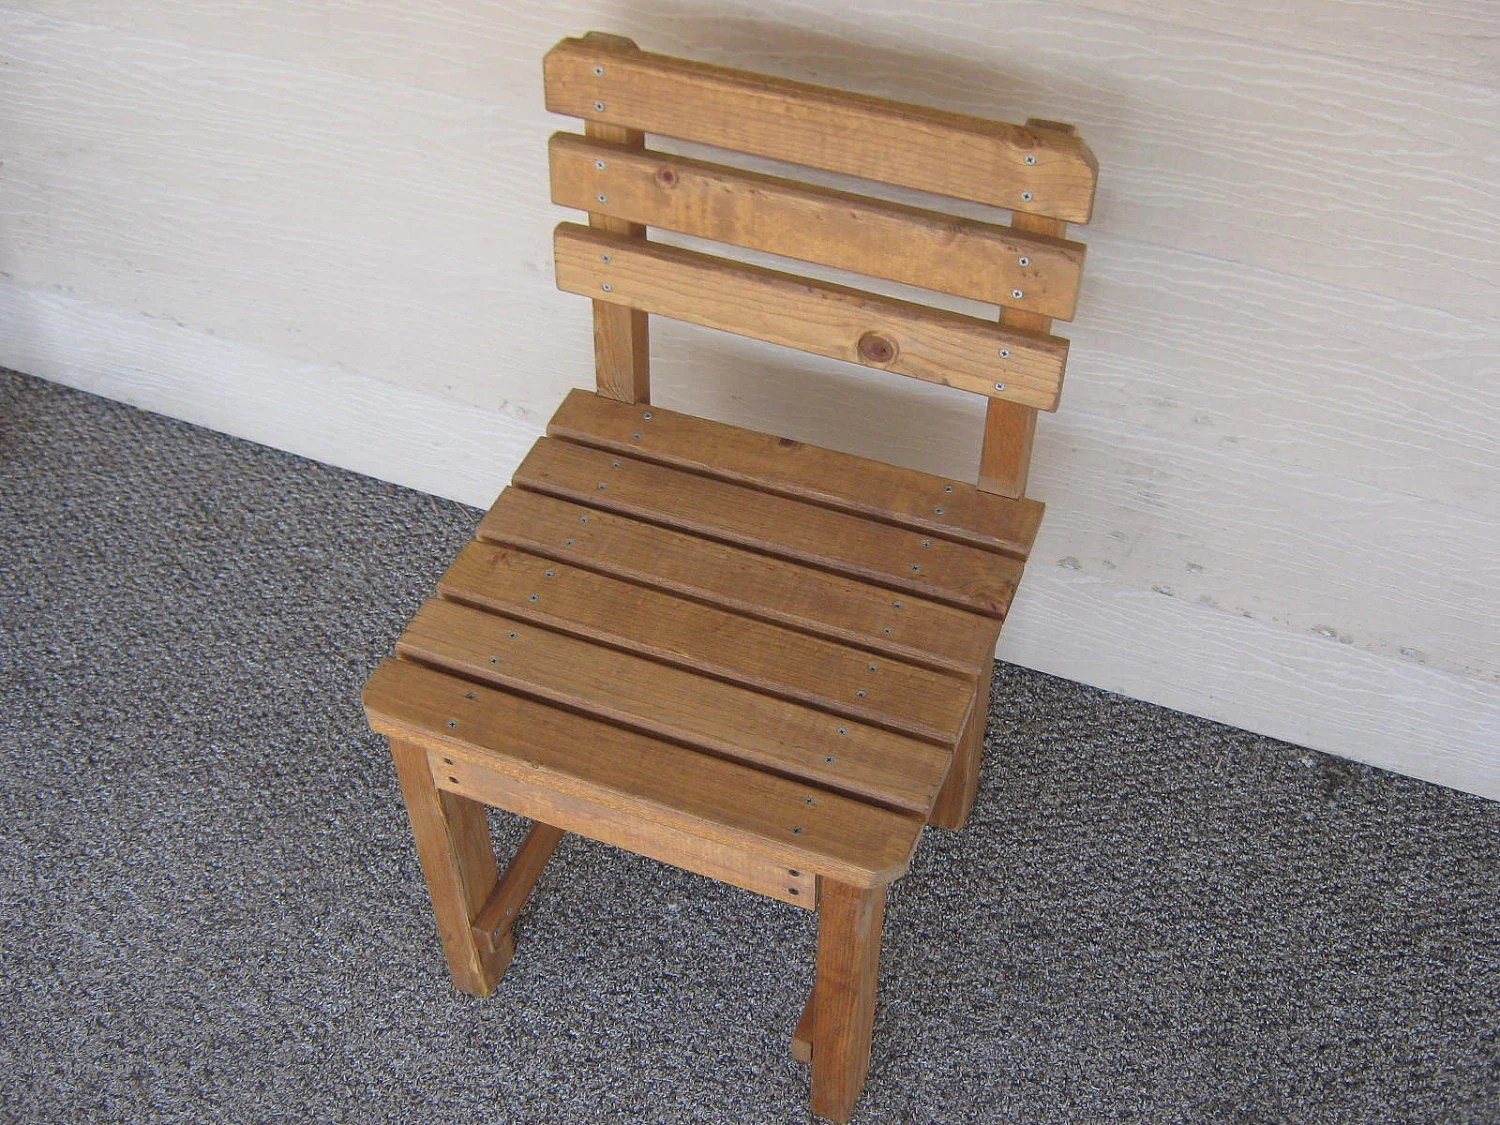 wood patio chair plans diy chairs to make outdoor by wingstoshop on etsy